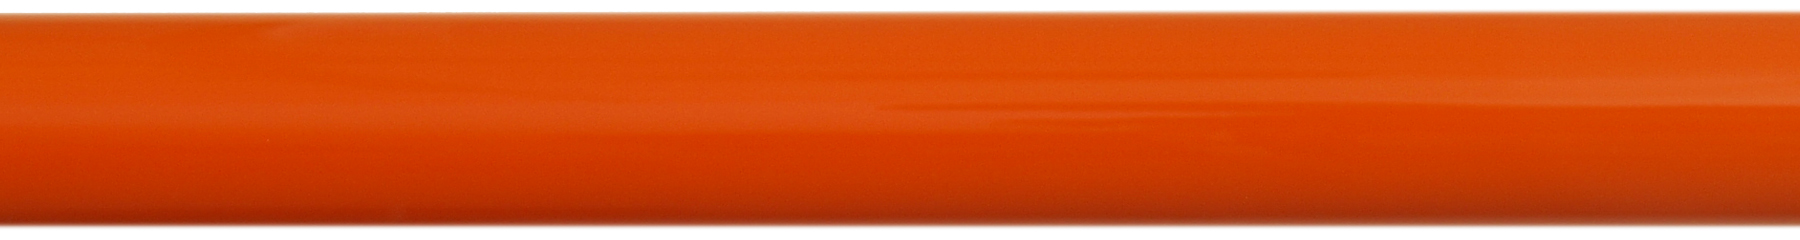 Monarch Orange Tube Sample